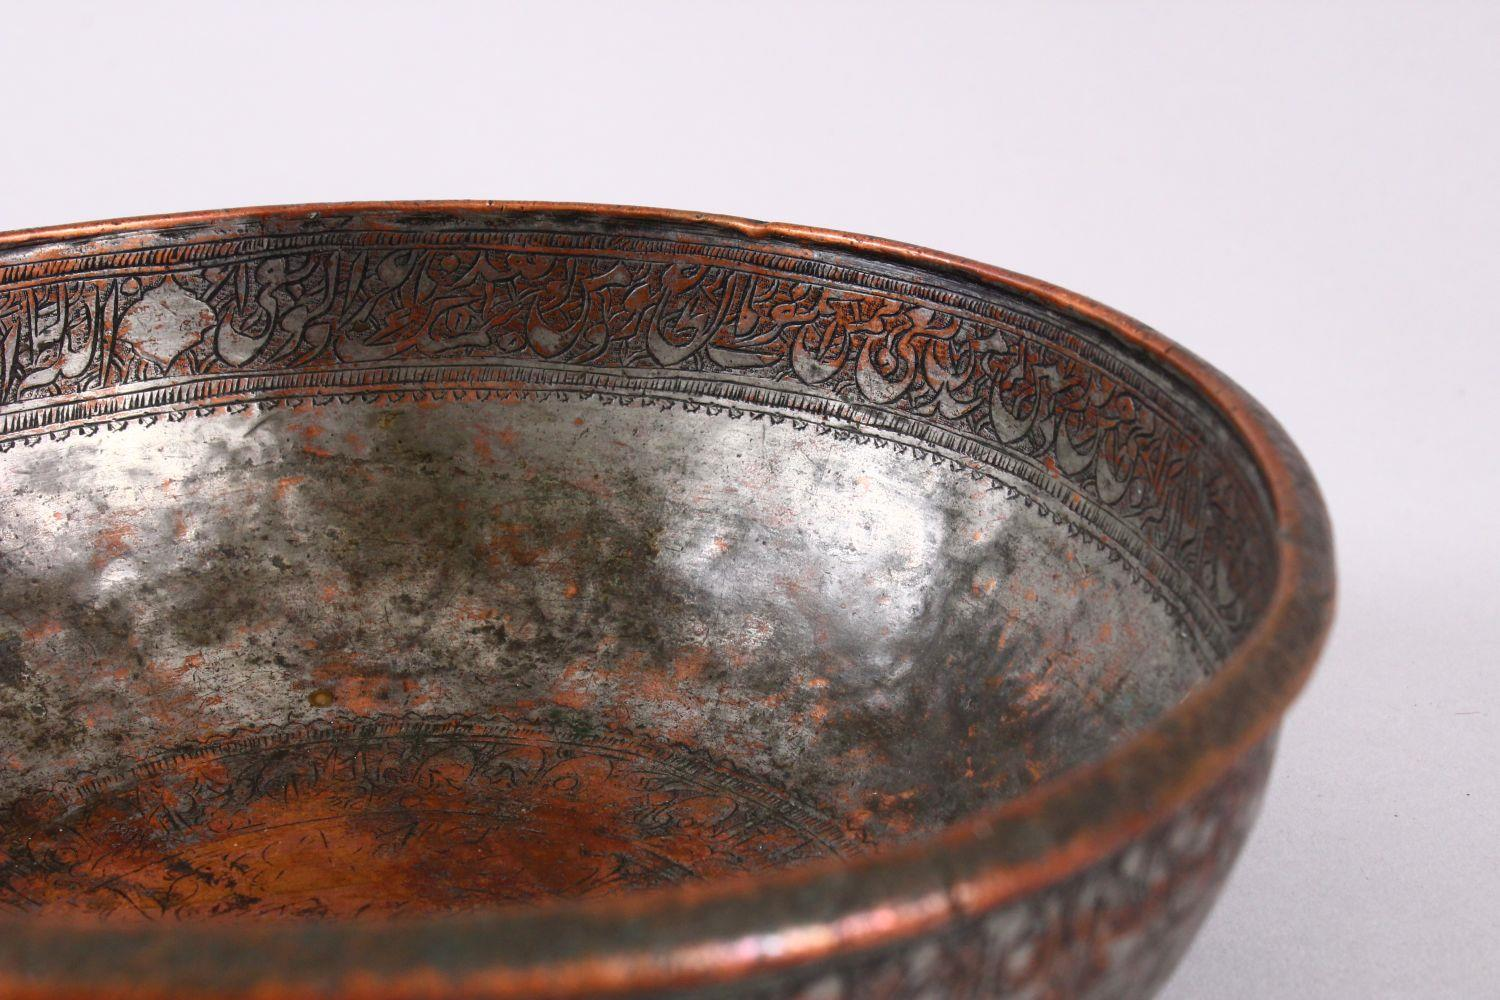 A UNUSUAL ISLAMIC TINNED HAMMERED COPPER CALLIGRAPHIC BOWL, decorated with interior & exterior bands - Image 4 of 8